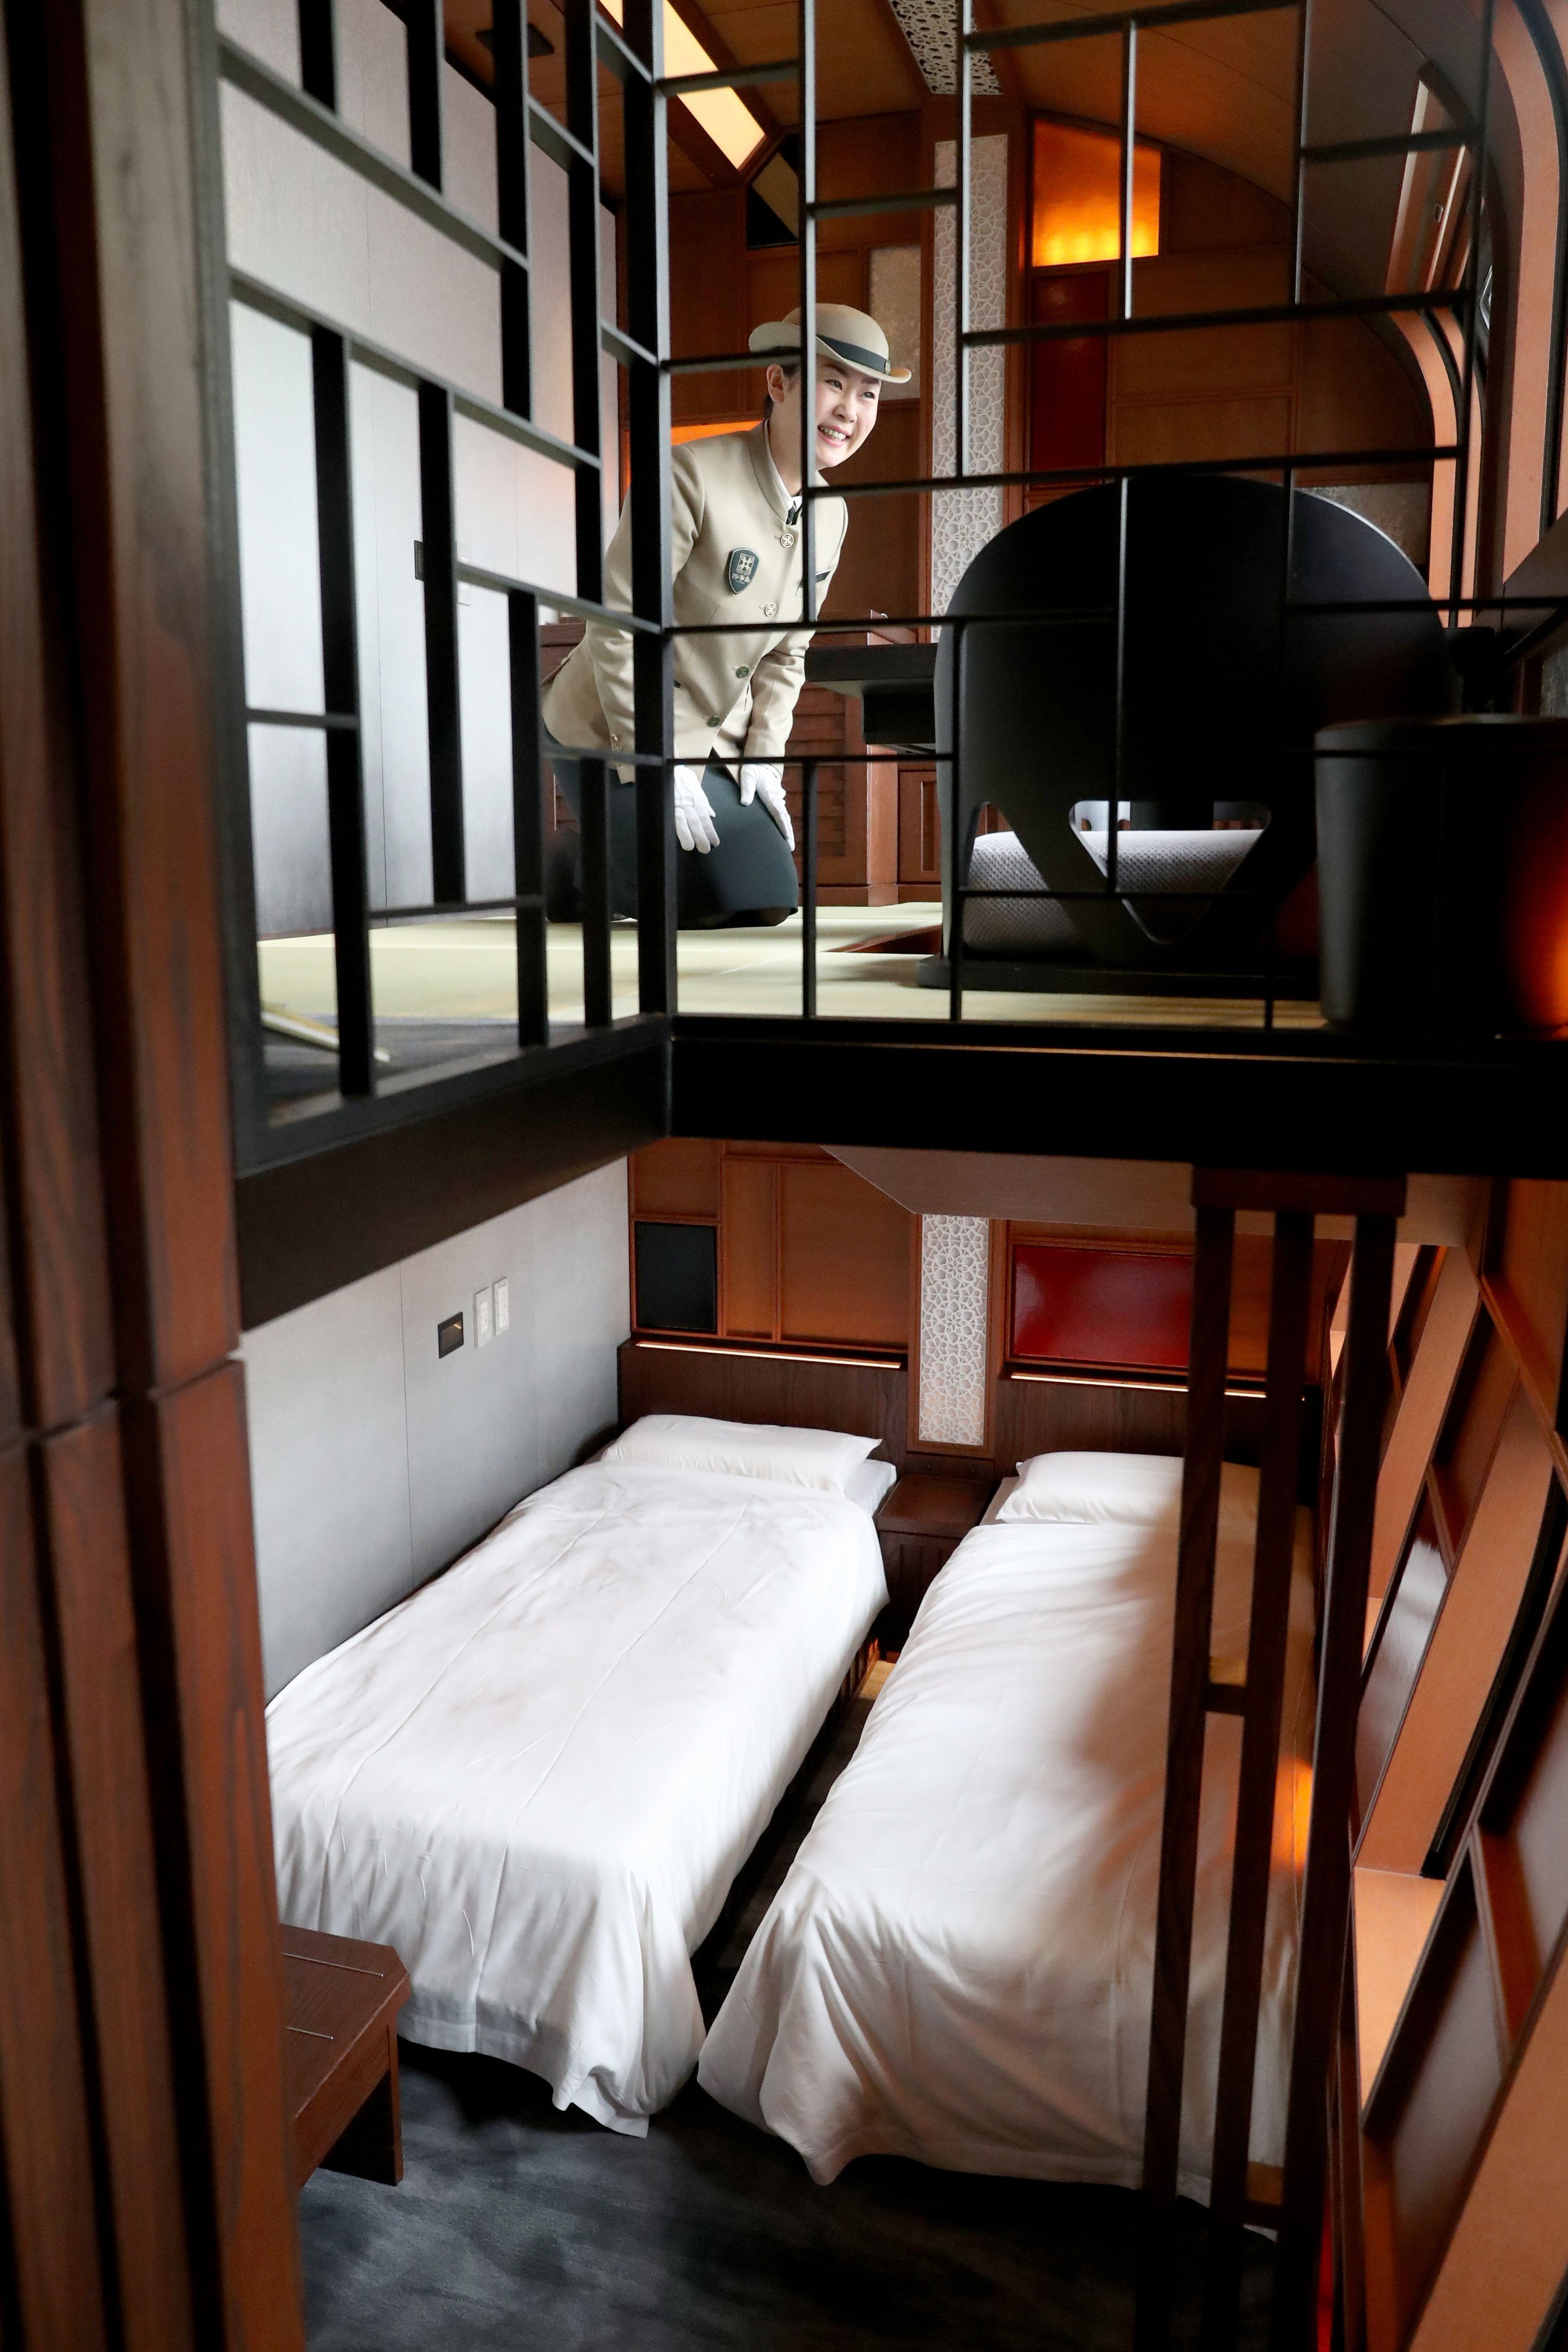 A crew member introduces the Shiki-Shima Suite of the Train Suite Shiki-Shima.